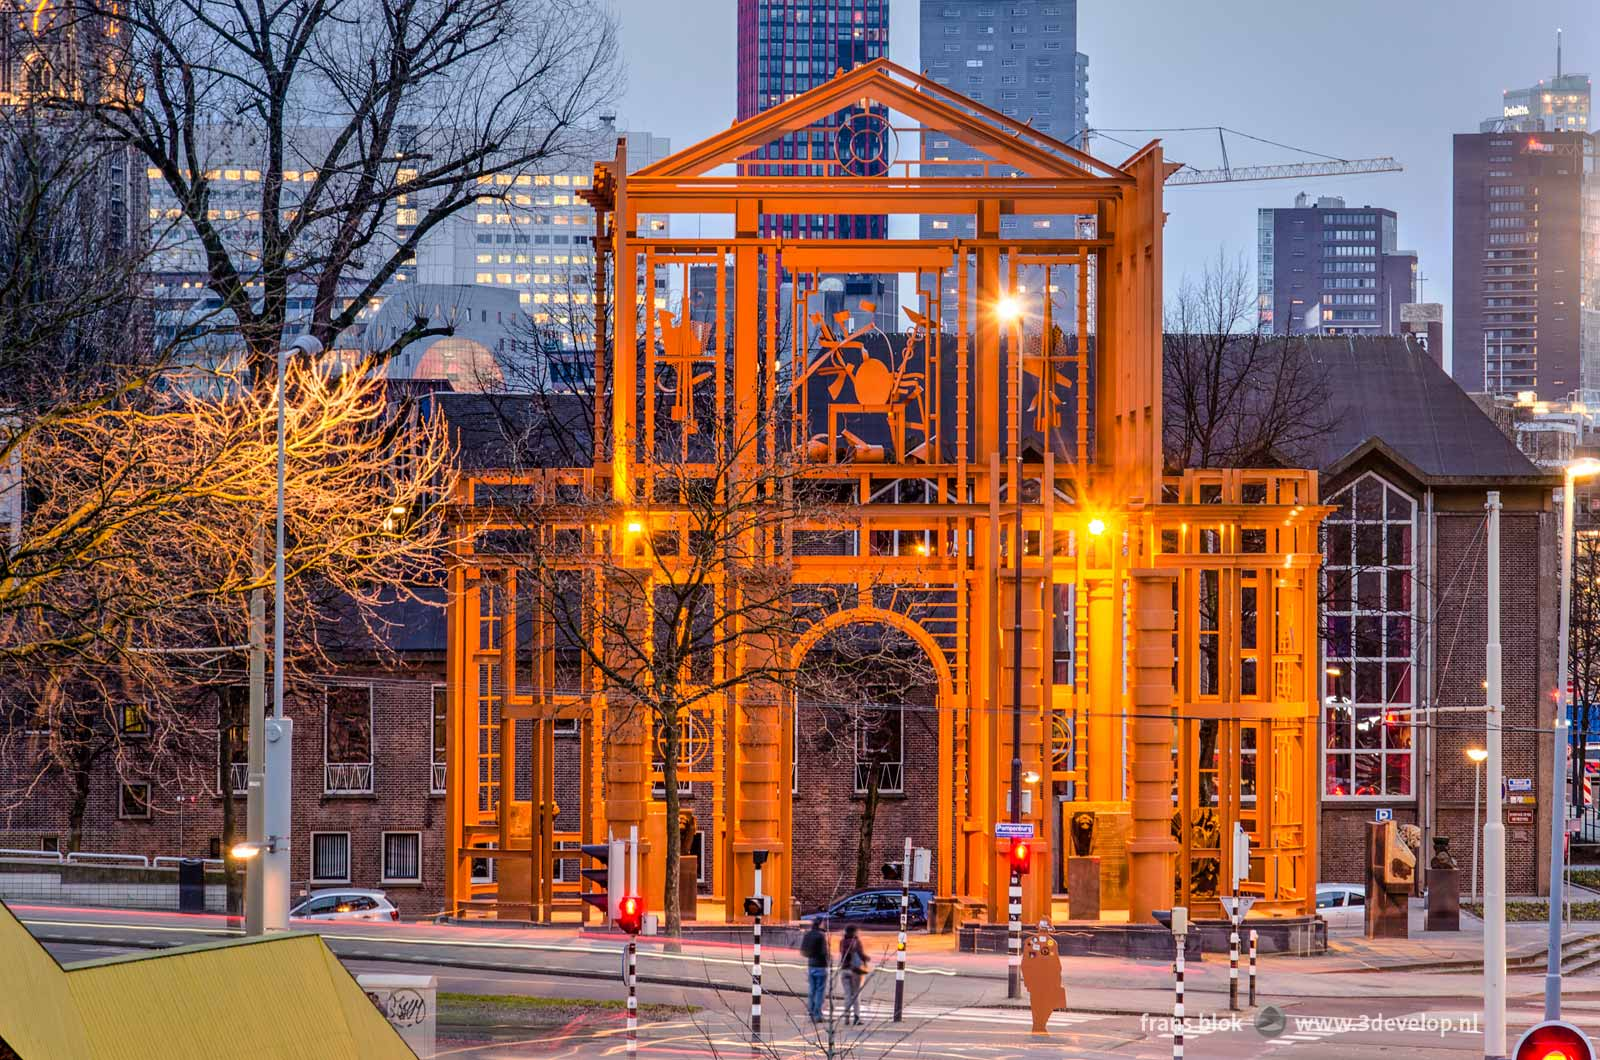 The giant steel sculpture The New Delft Gate by artist Cor Kraat on the corner of Pompenburg aan Haagseveer in Rotterdam